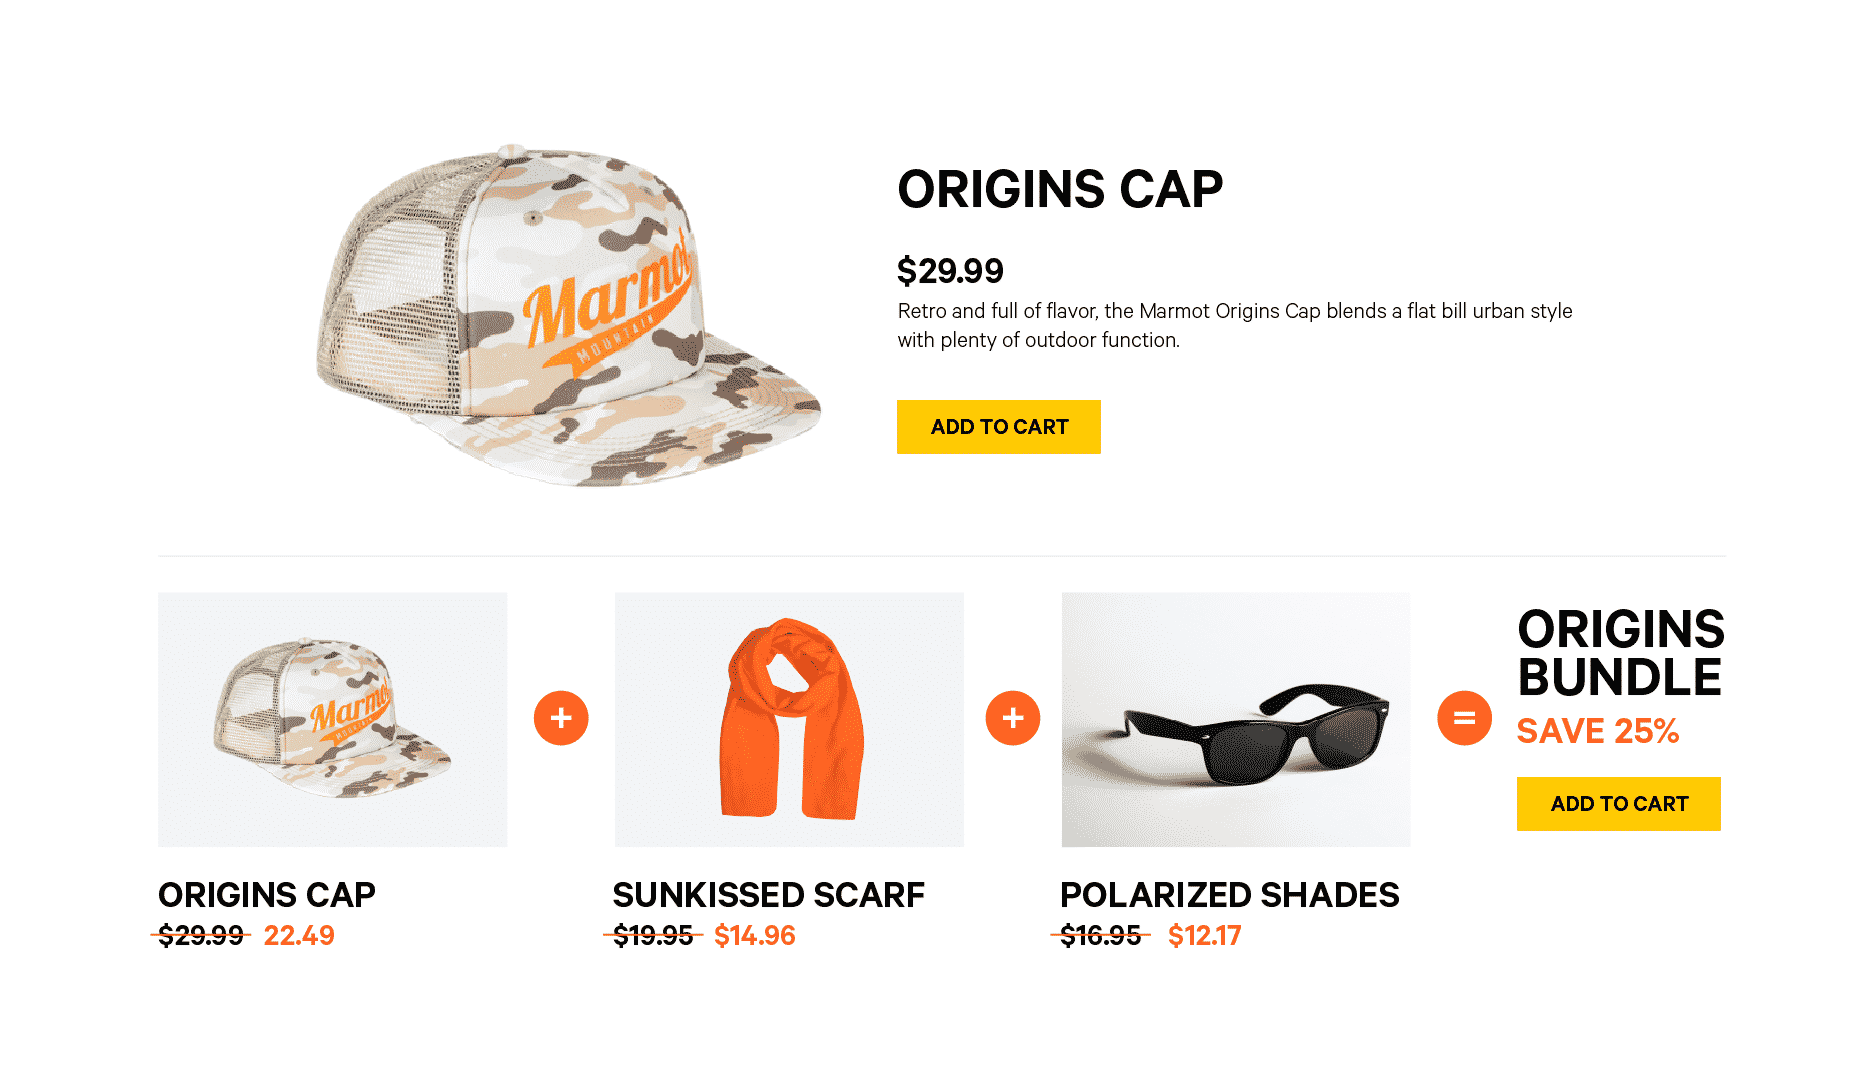 Delight Customers With Product Bundles and Collections